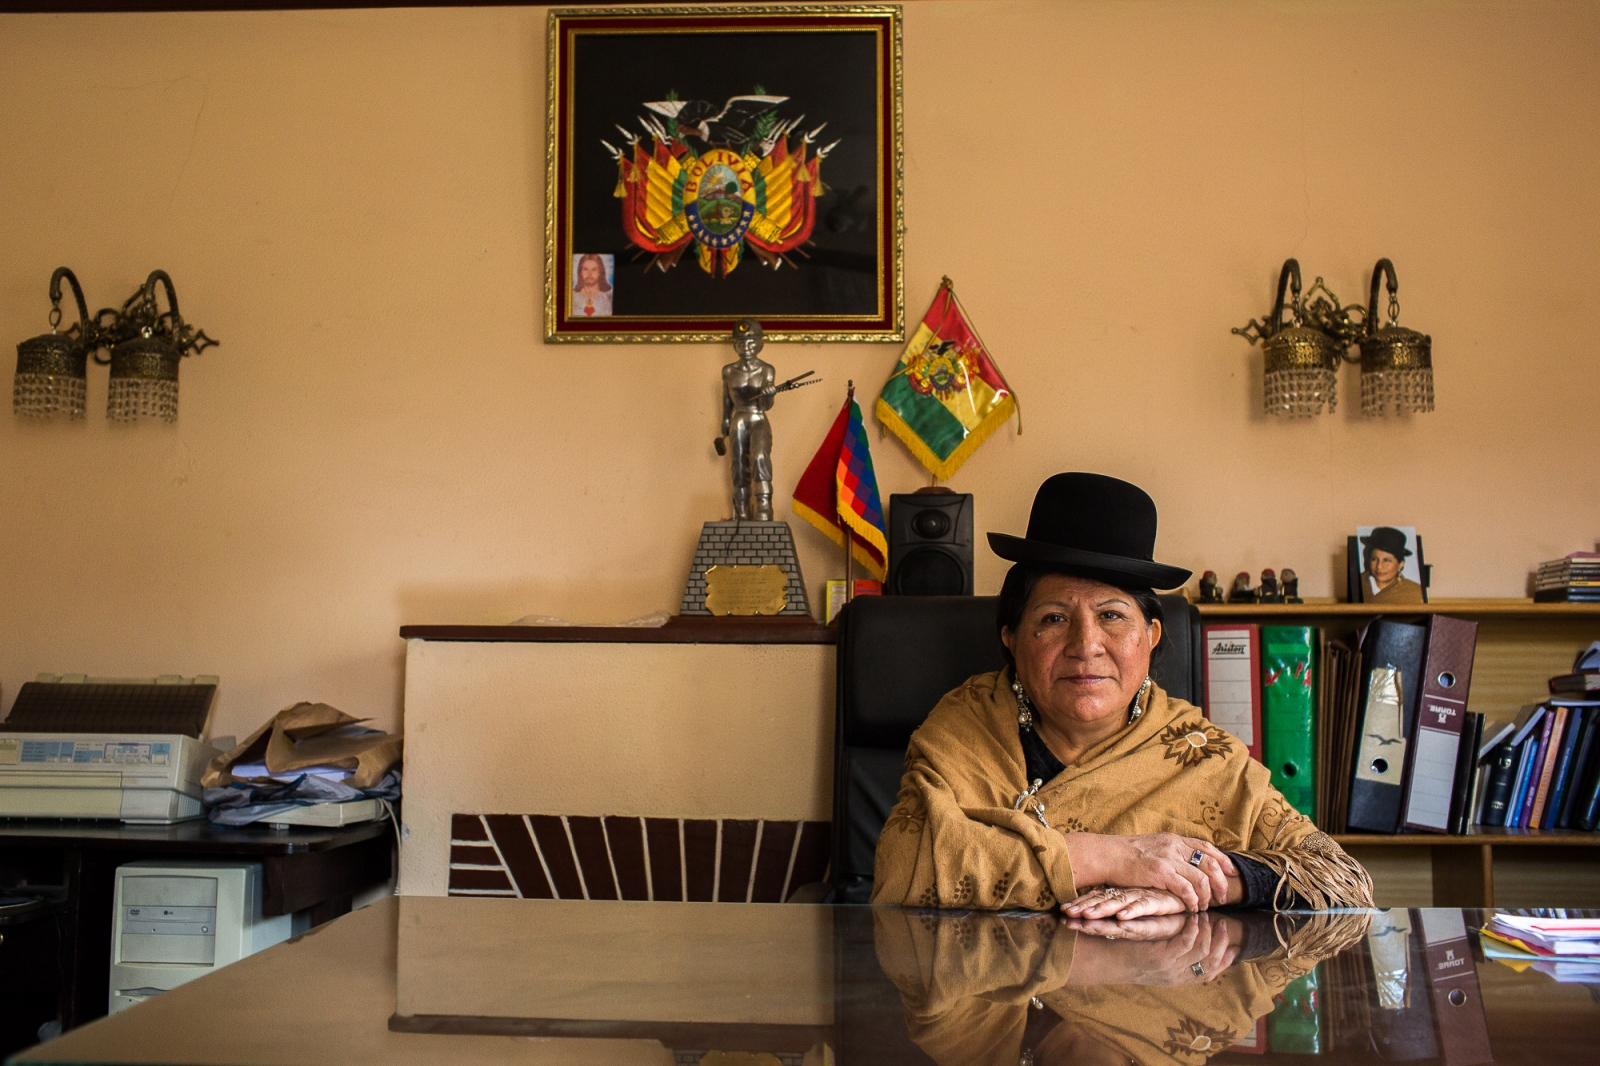 "Remedios Loza in her office at Radio Andina in La Paz. Comadre Remedios as Loza is known as a pioneer for ""cholitas' rights."" In 1962, she became the first indigenous woman to have radio and TV programs, and she used these platforms to give voice to the indigenous and to poor people. In 1989, she became the first indigenous woman to have a seat in Bolivia's Plurinational Legislative Assembly. In 1997, she became the first woman to ever run for Bolivia's presidency. She came in third; but fewer than 10 years later, her movement helped elect Evo Morales as the country's first indigenous president."